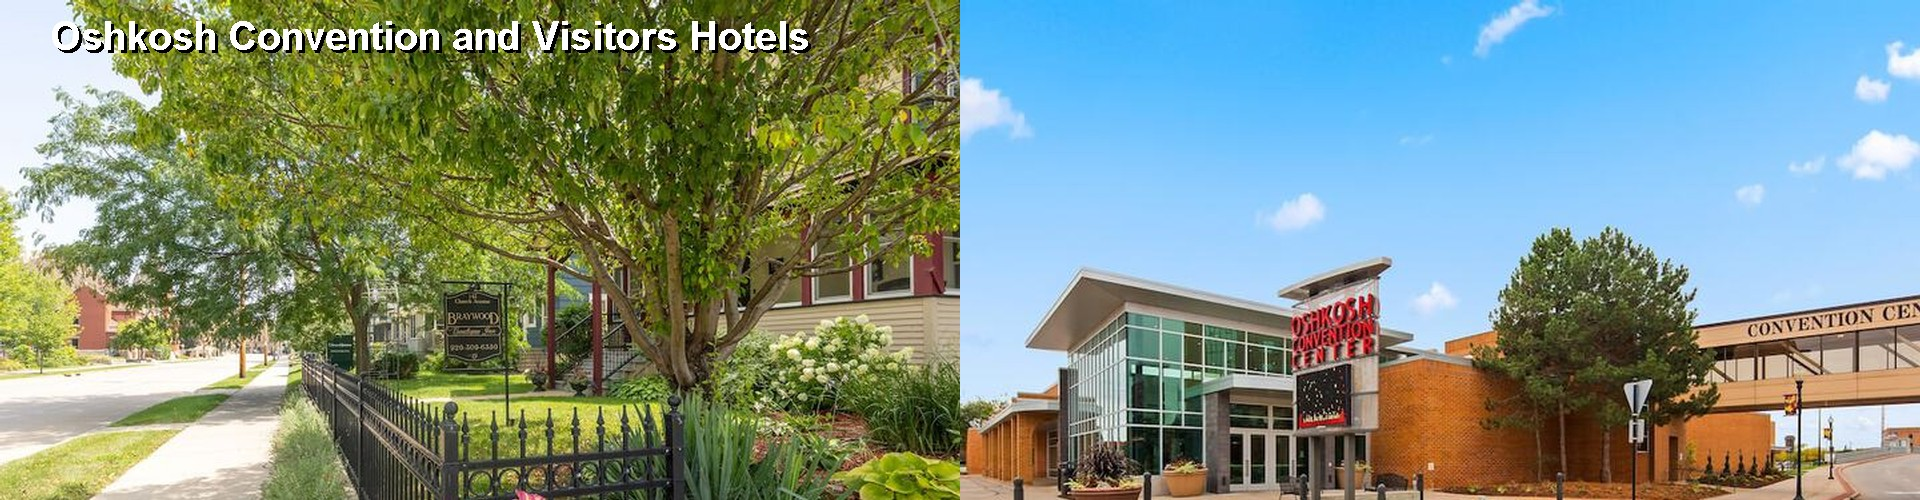 5 Best Hotels near Oshkosh Convention and Visitors